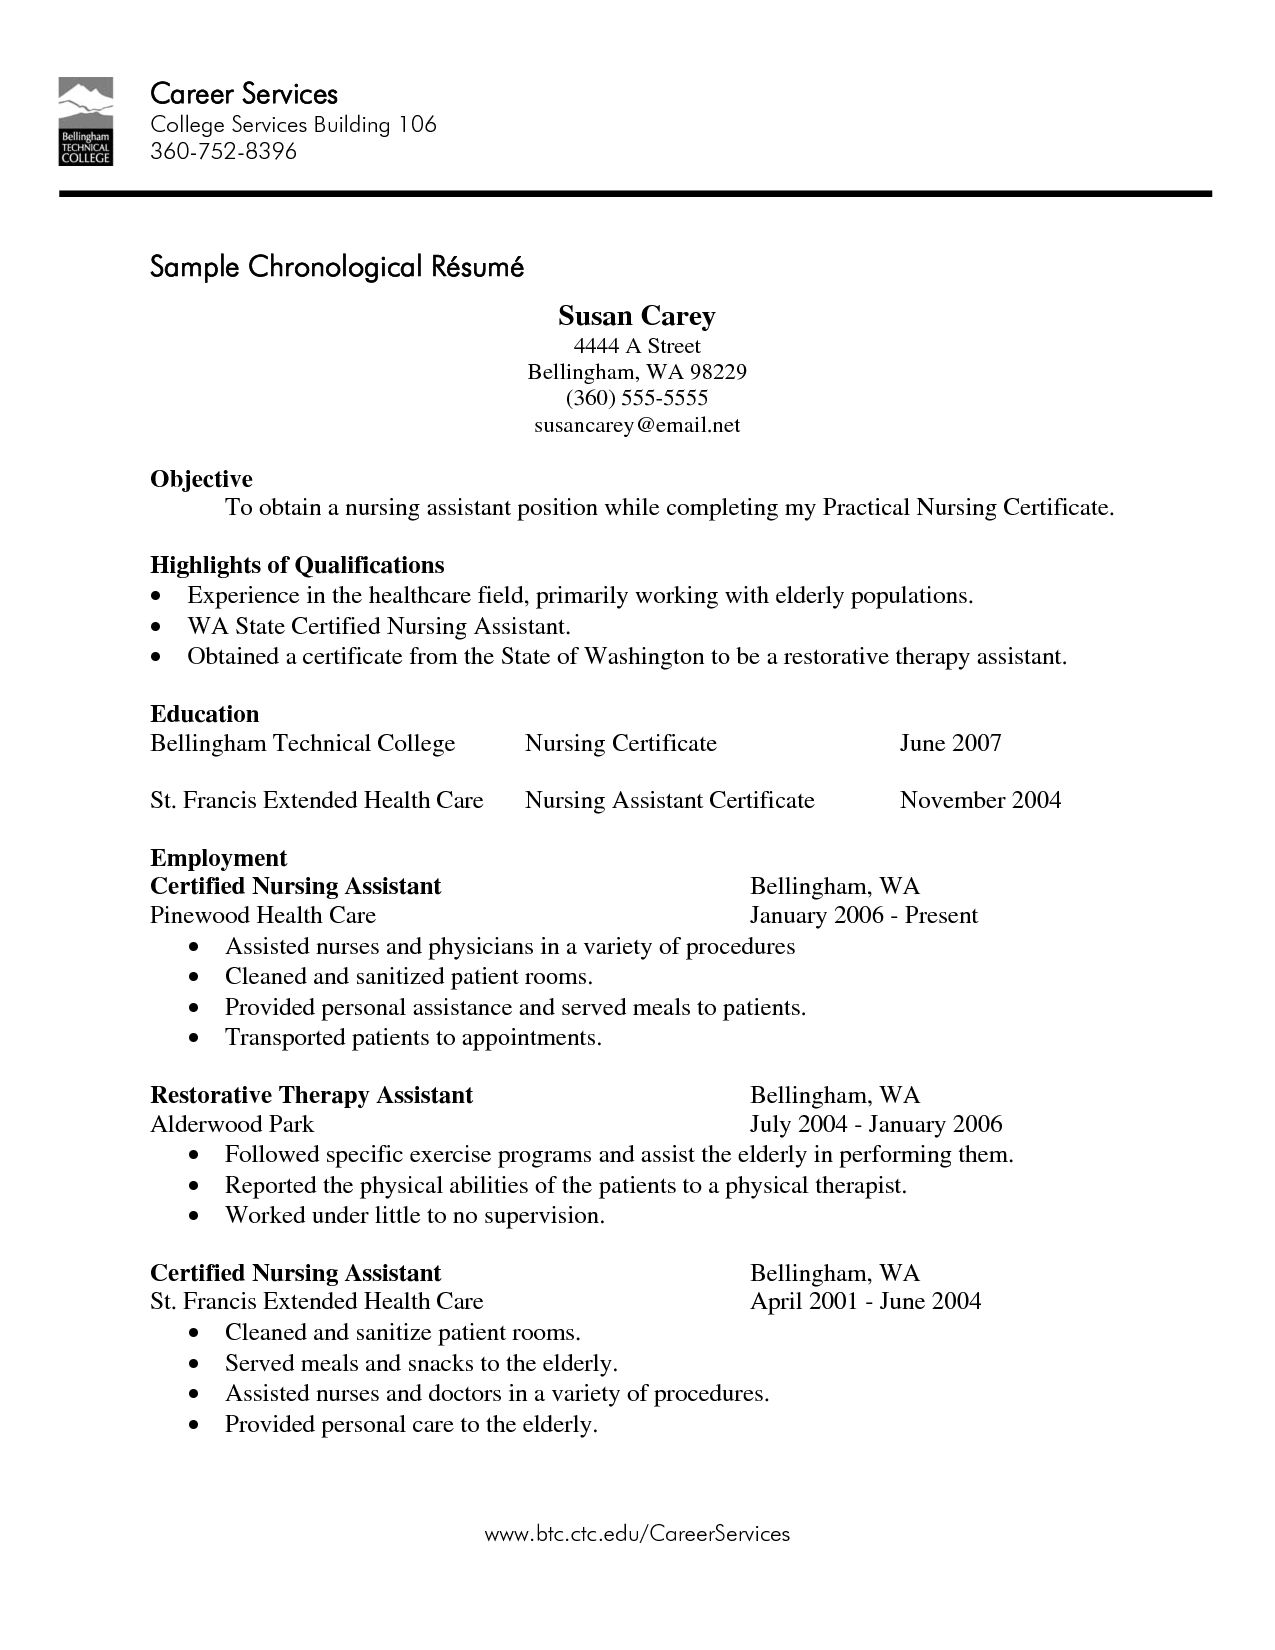 Sample Resume For Nursing Assistant Cna Resume Sampleml Experience Template Design  Resume Templates .